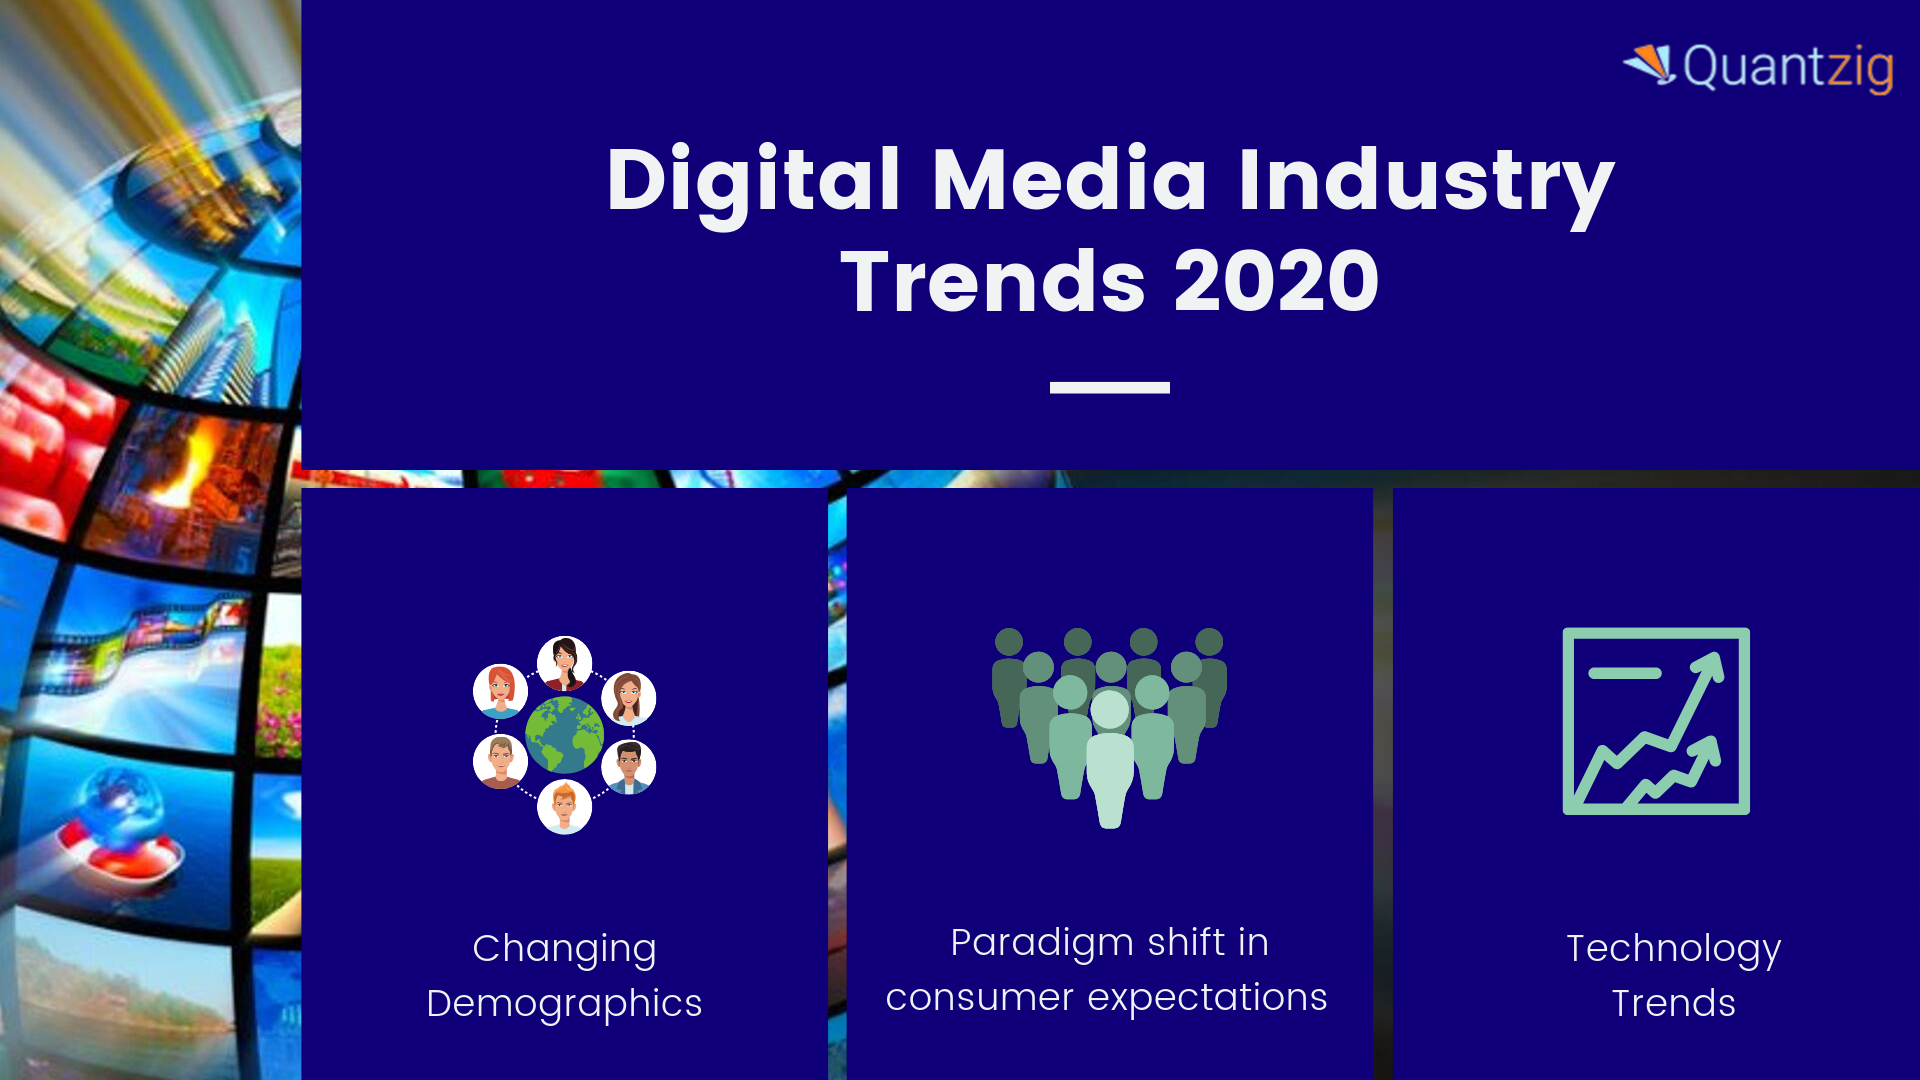 DIGITAL MEDIA INDUSTRY TRENDS